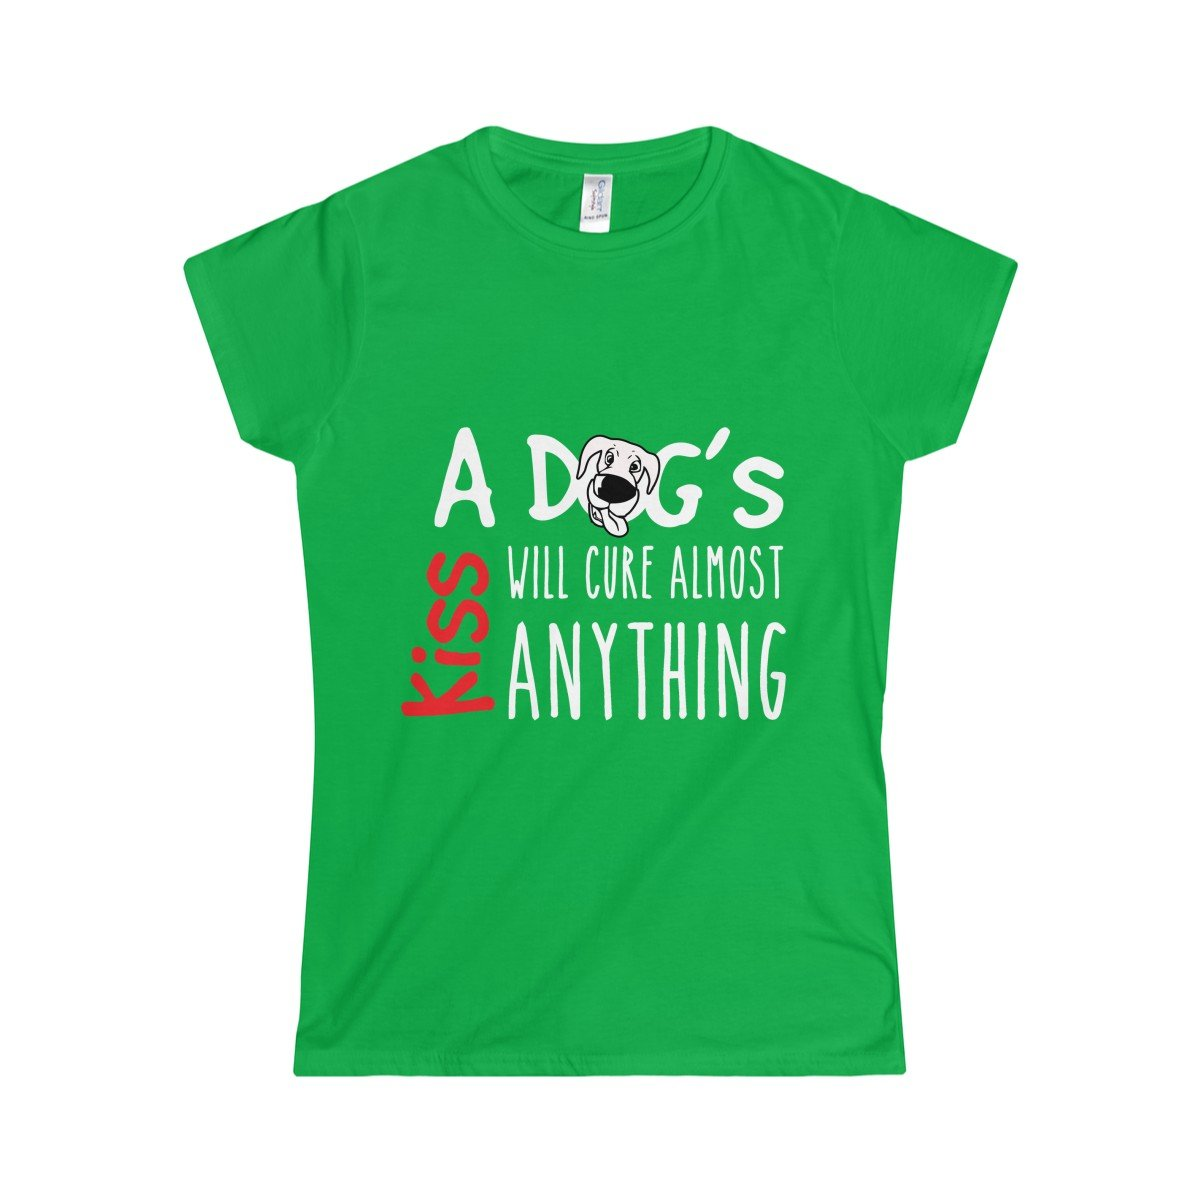 Funny Women's Green t-shirt with reading A Dog's Kiss Will Cure Almoast Anything